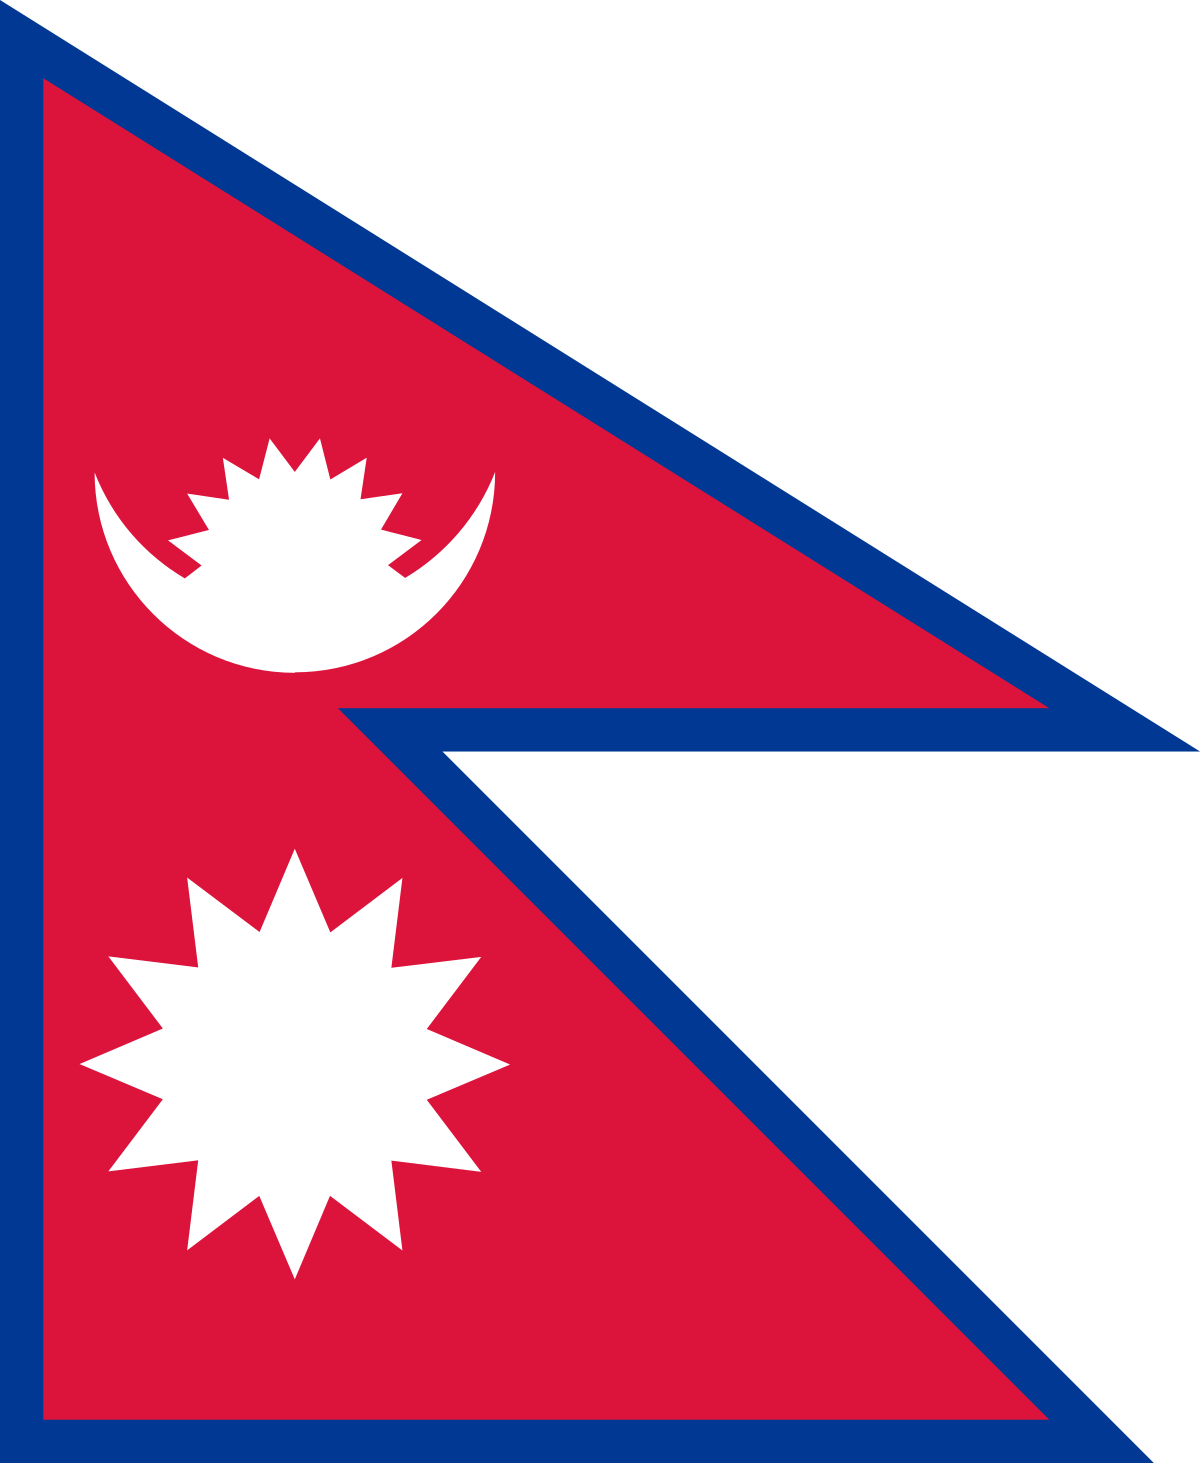 Where is Nepal?